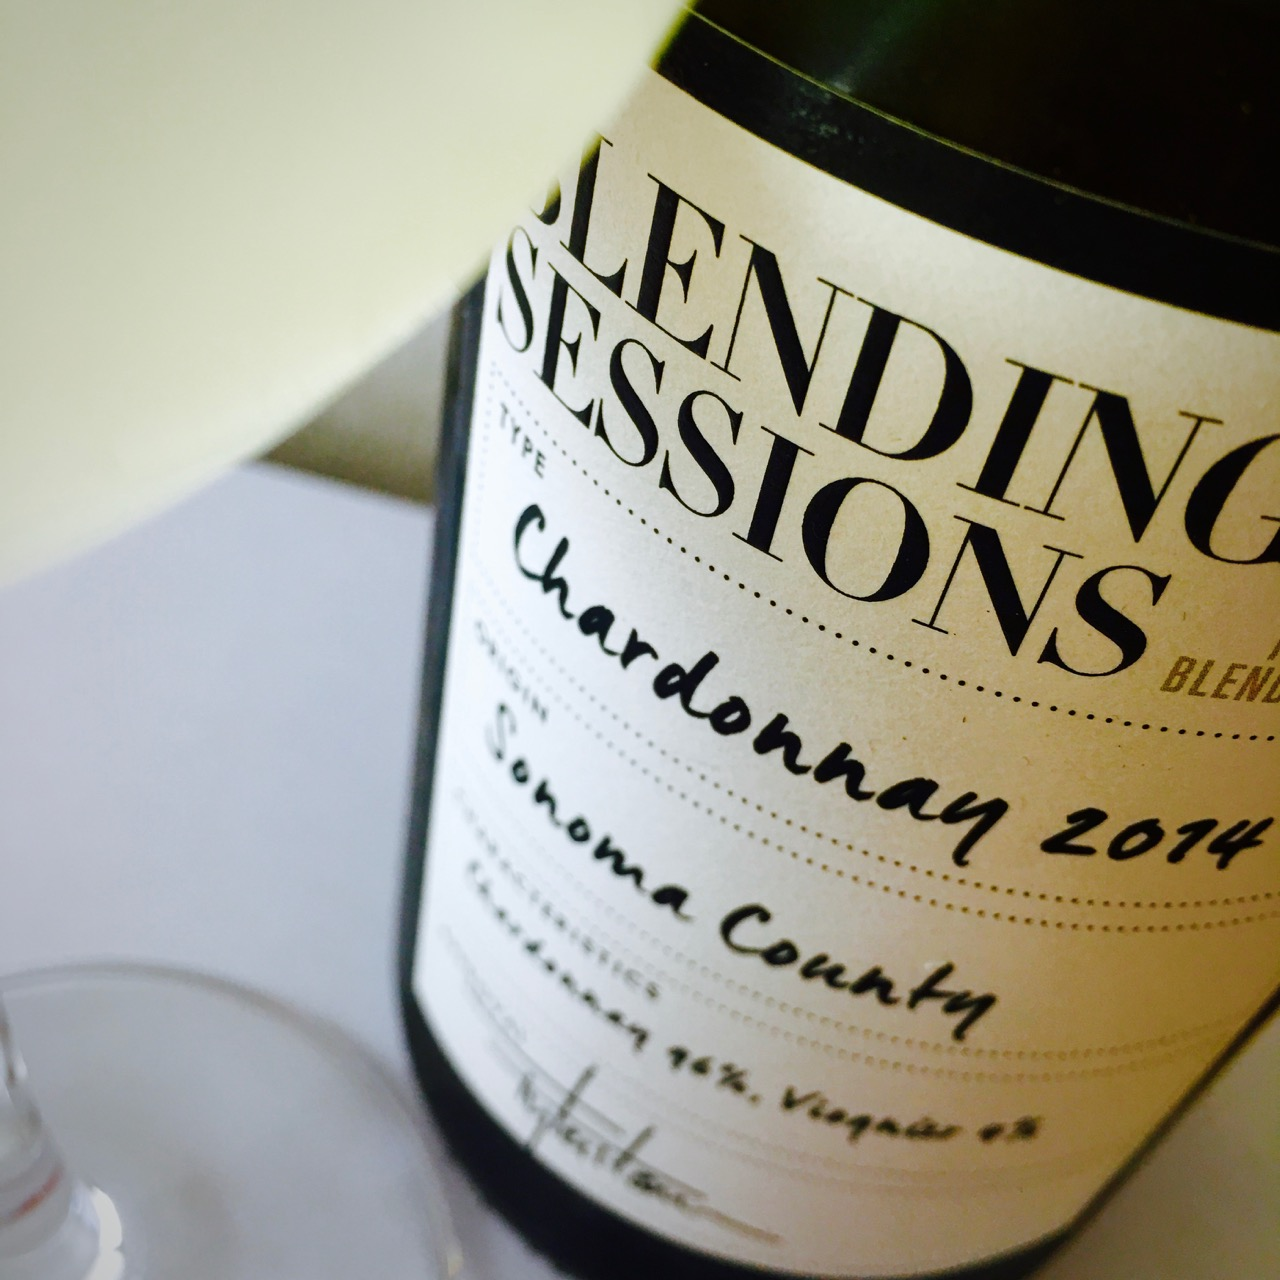 2014 Blending Sessions Chardonnay Sonoma County